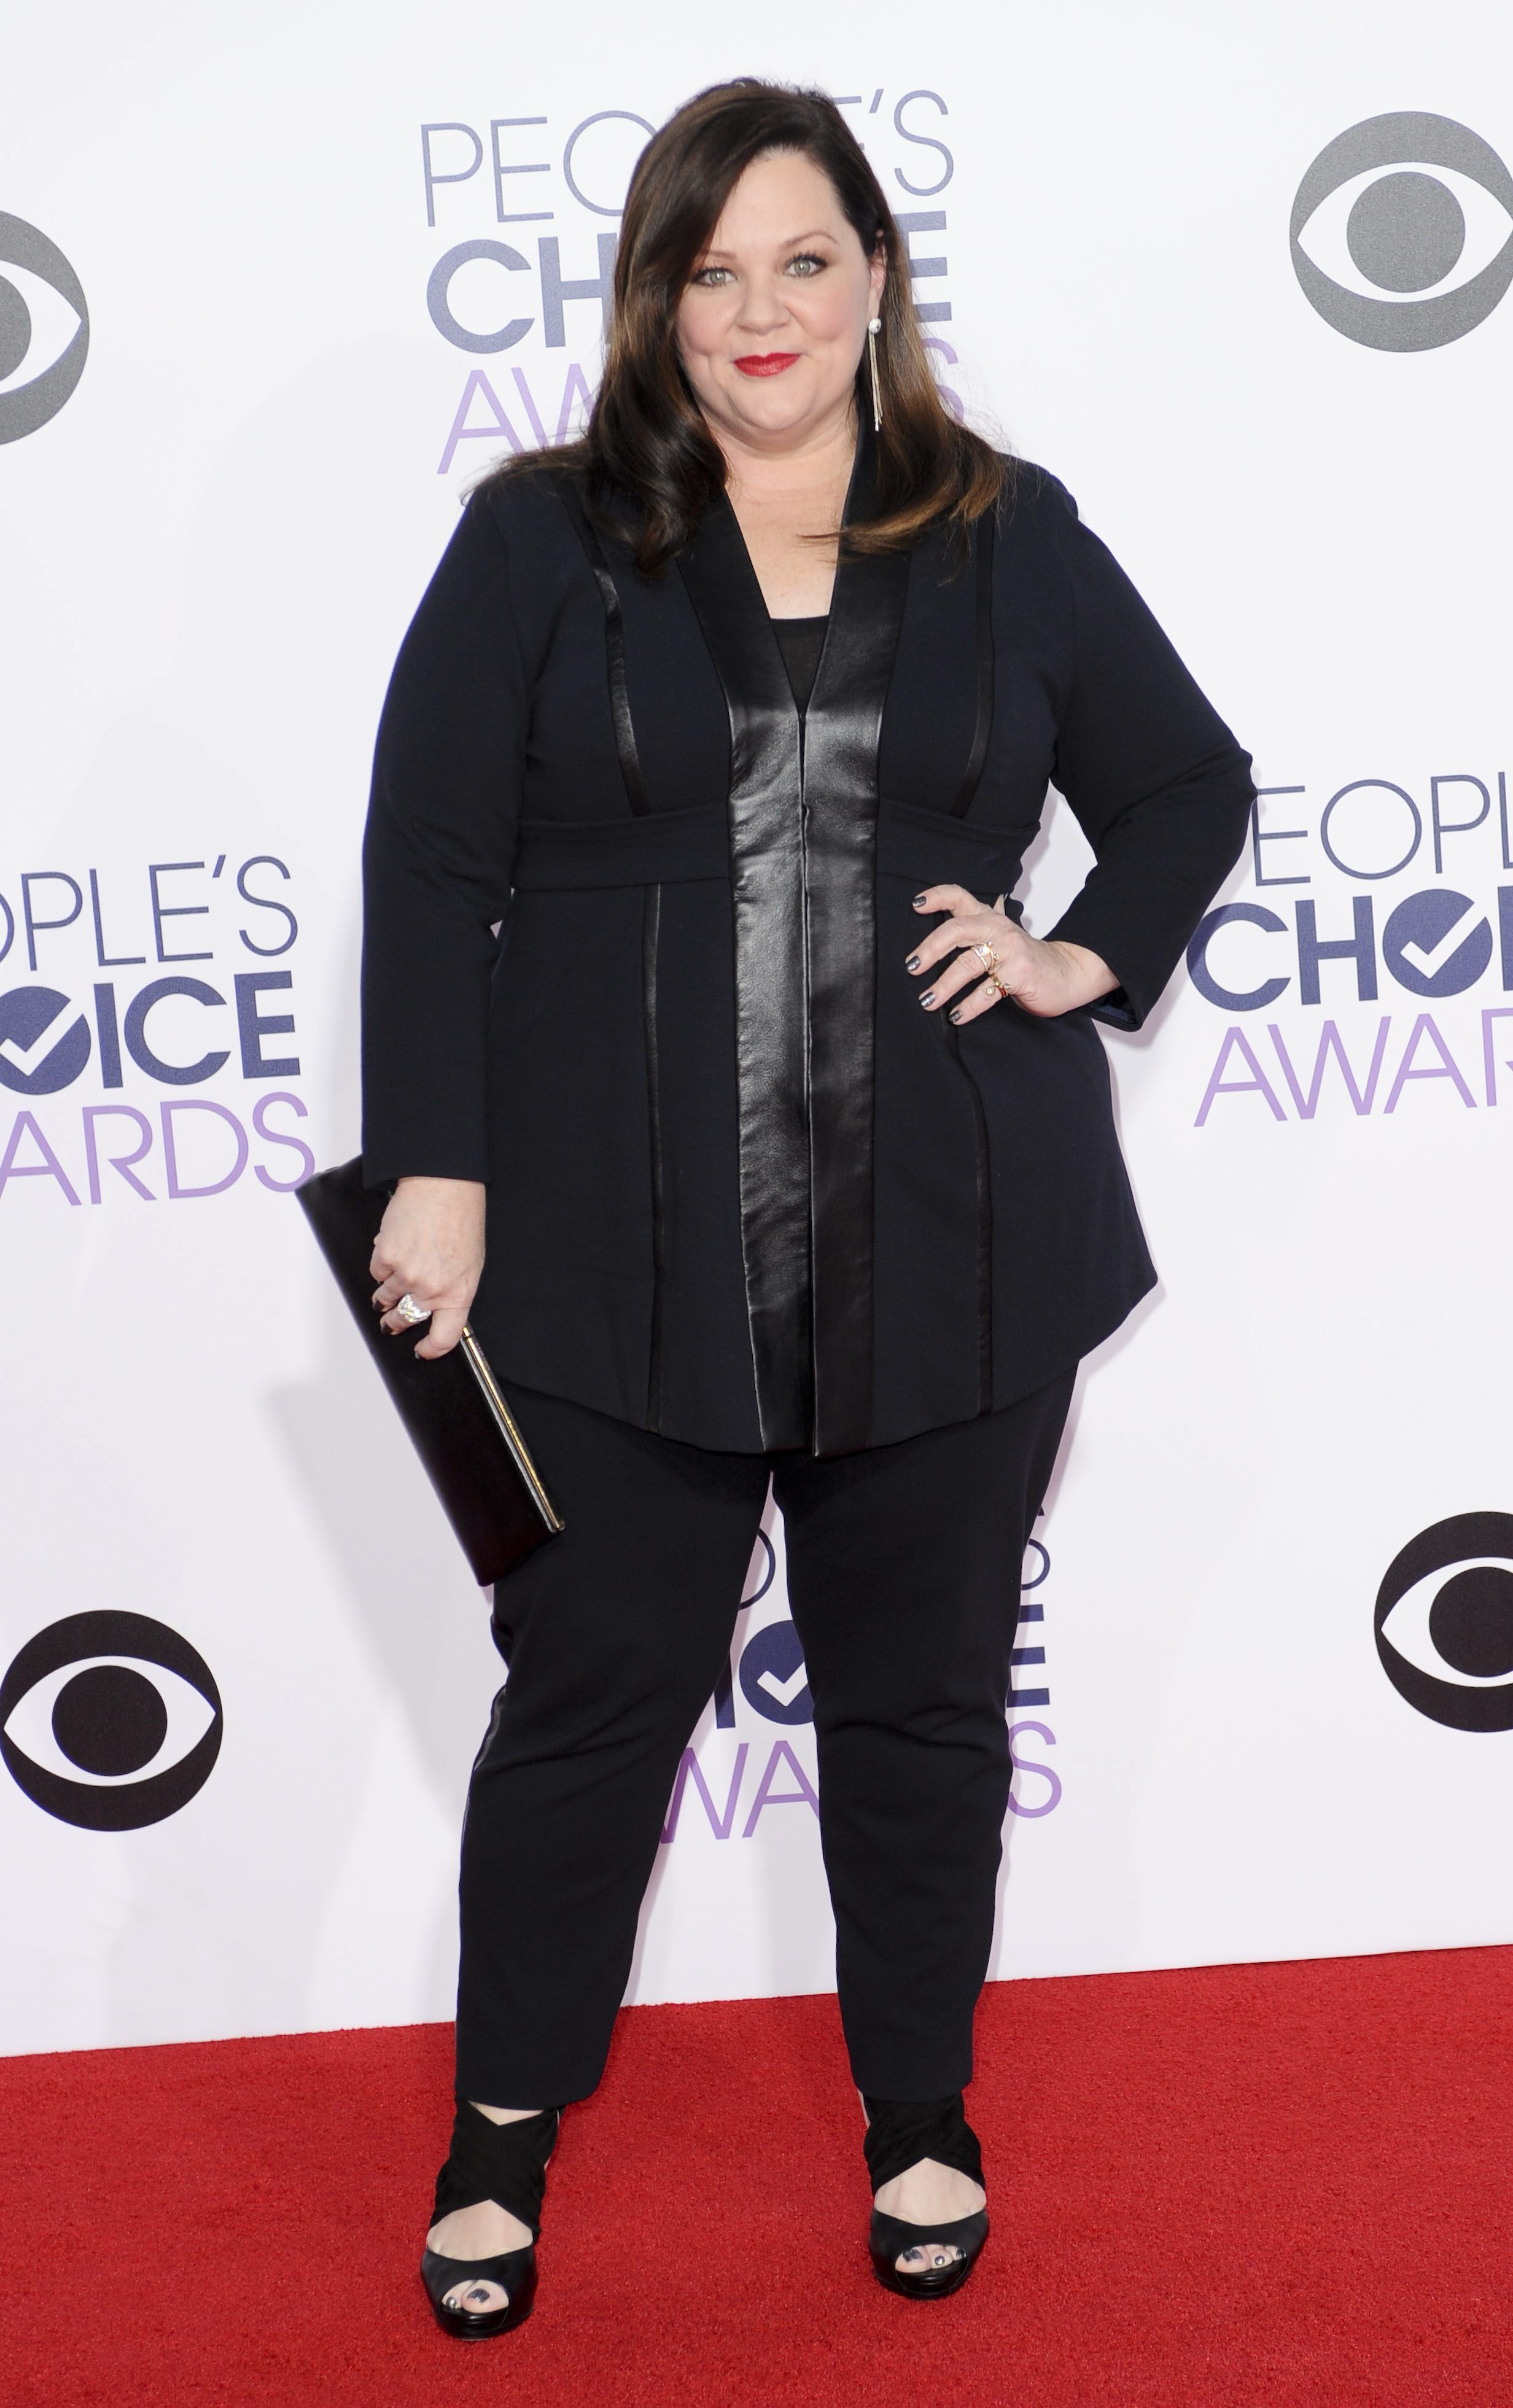 Melissa McCarthy Sustained Serious Injury While Filming 'Spy'